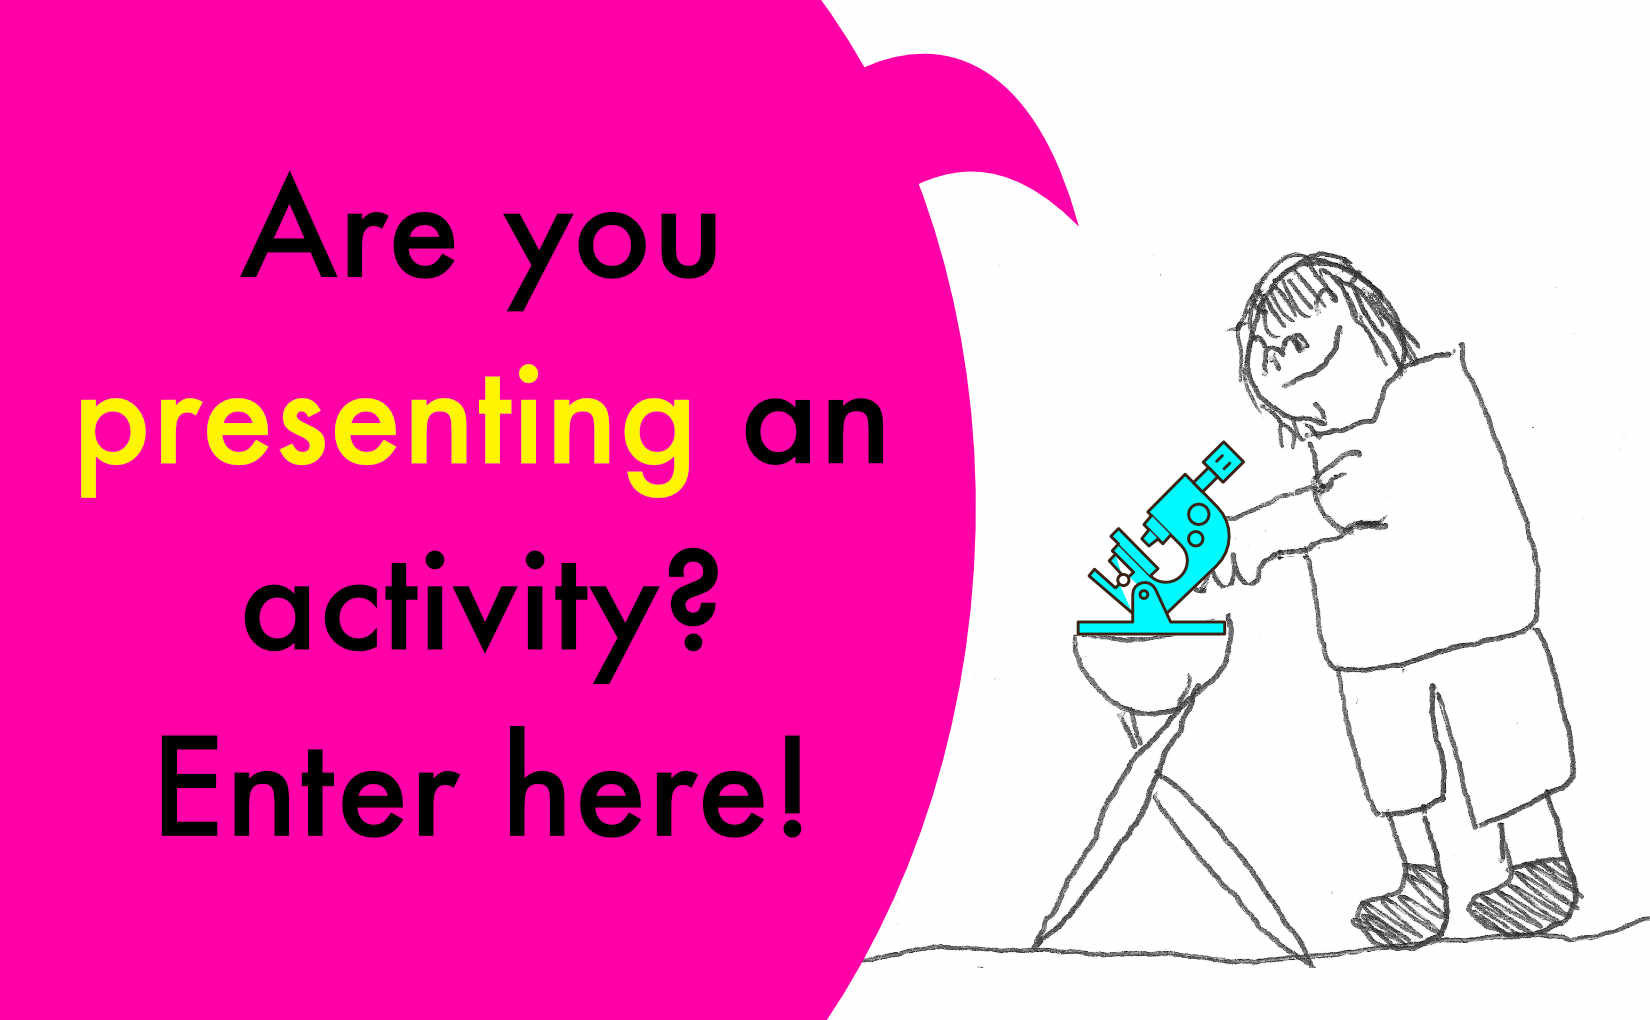 Are you presenting an activity at Sciencepalooza? Enter here!